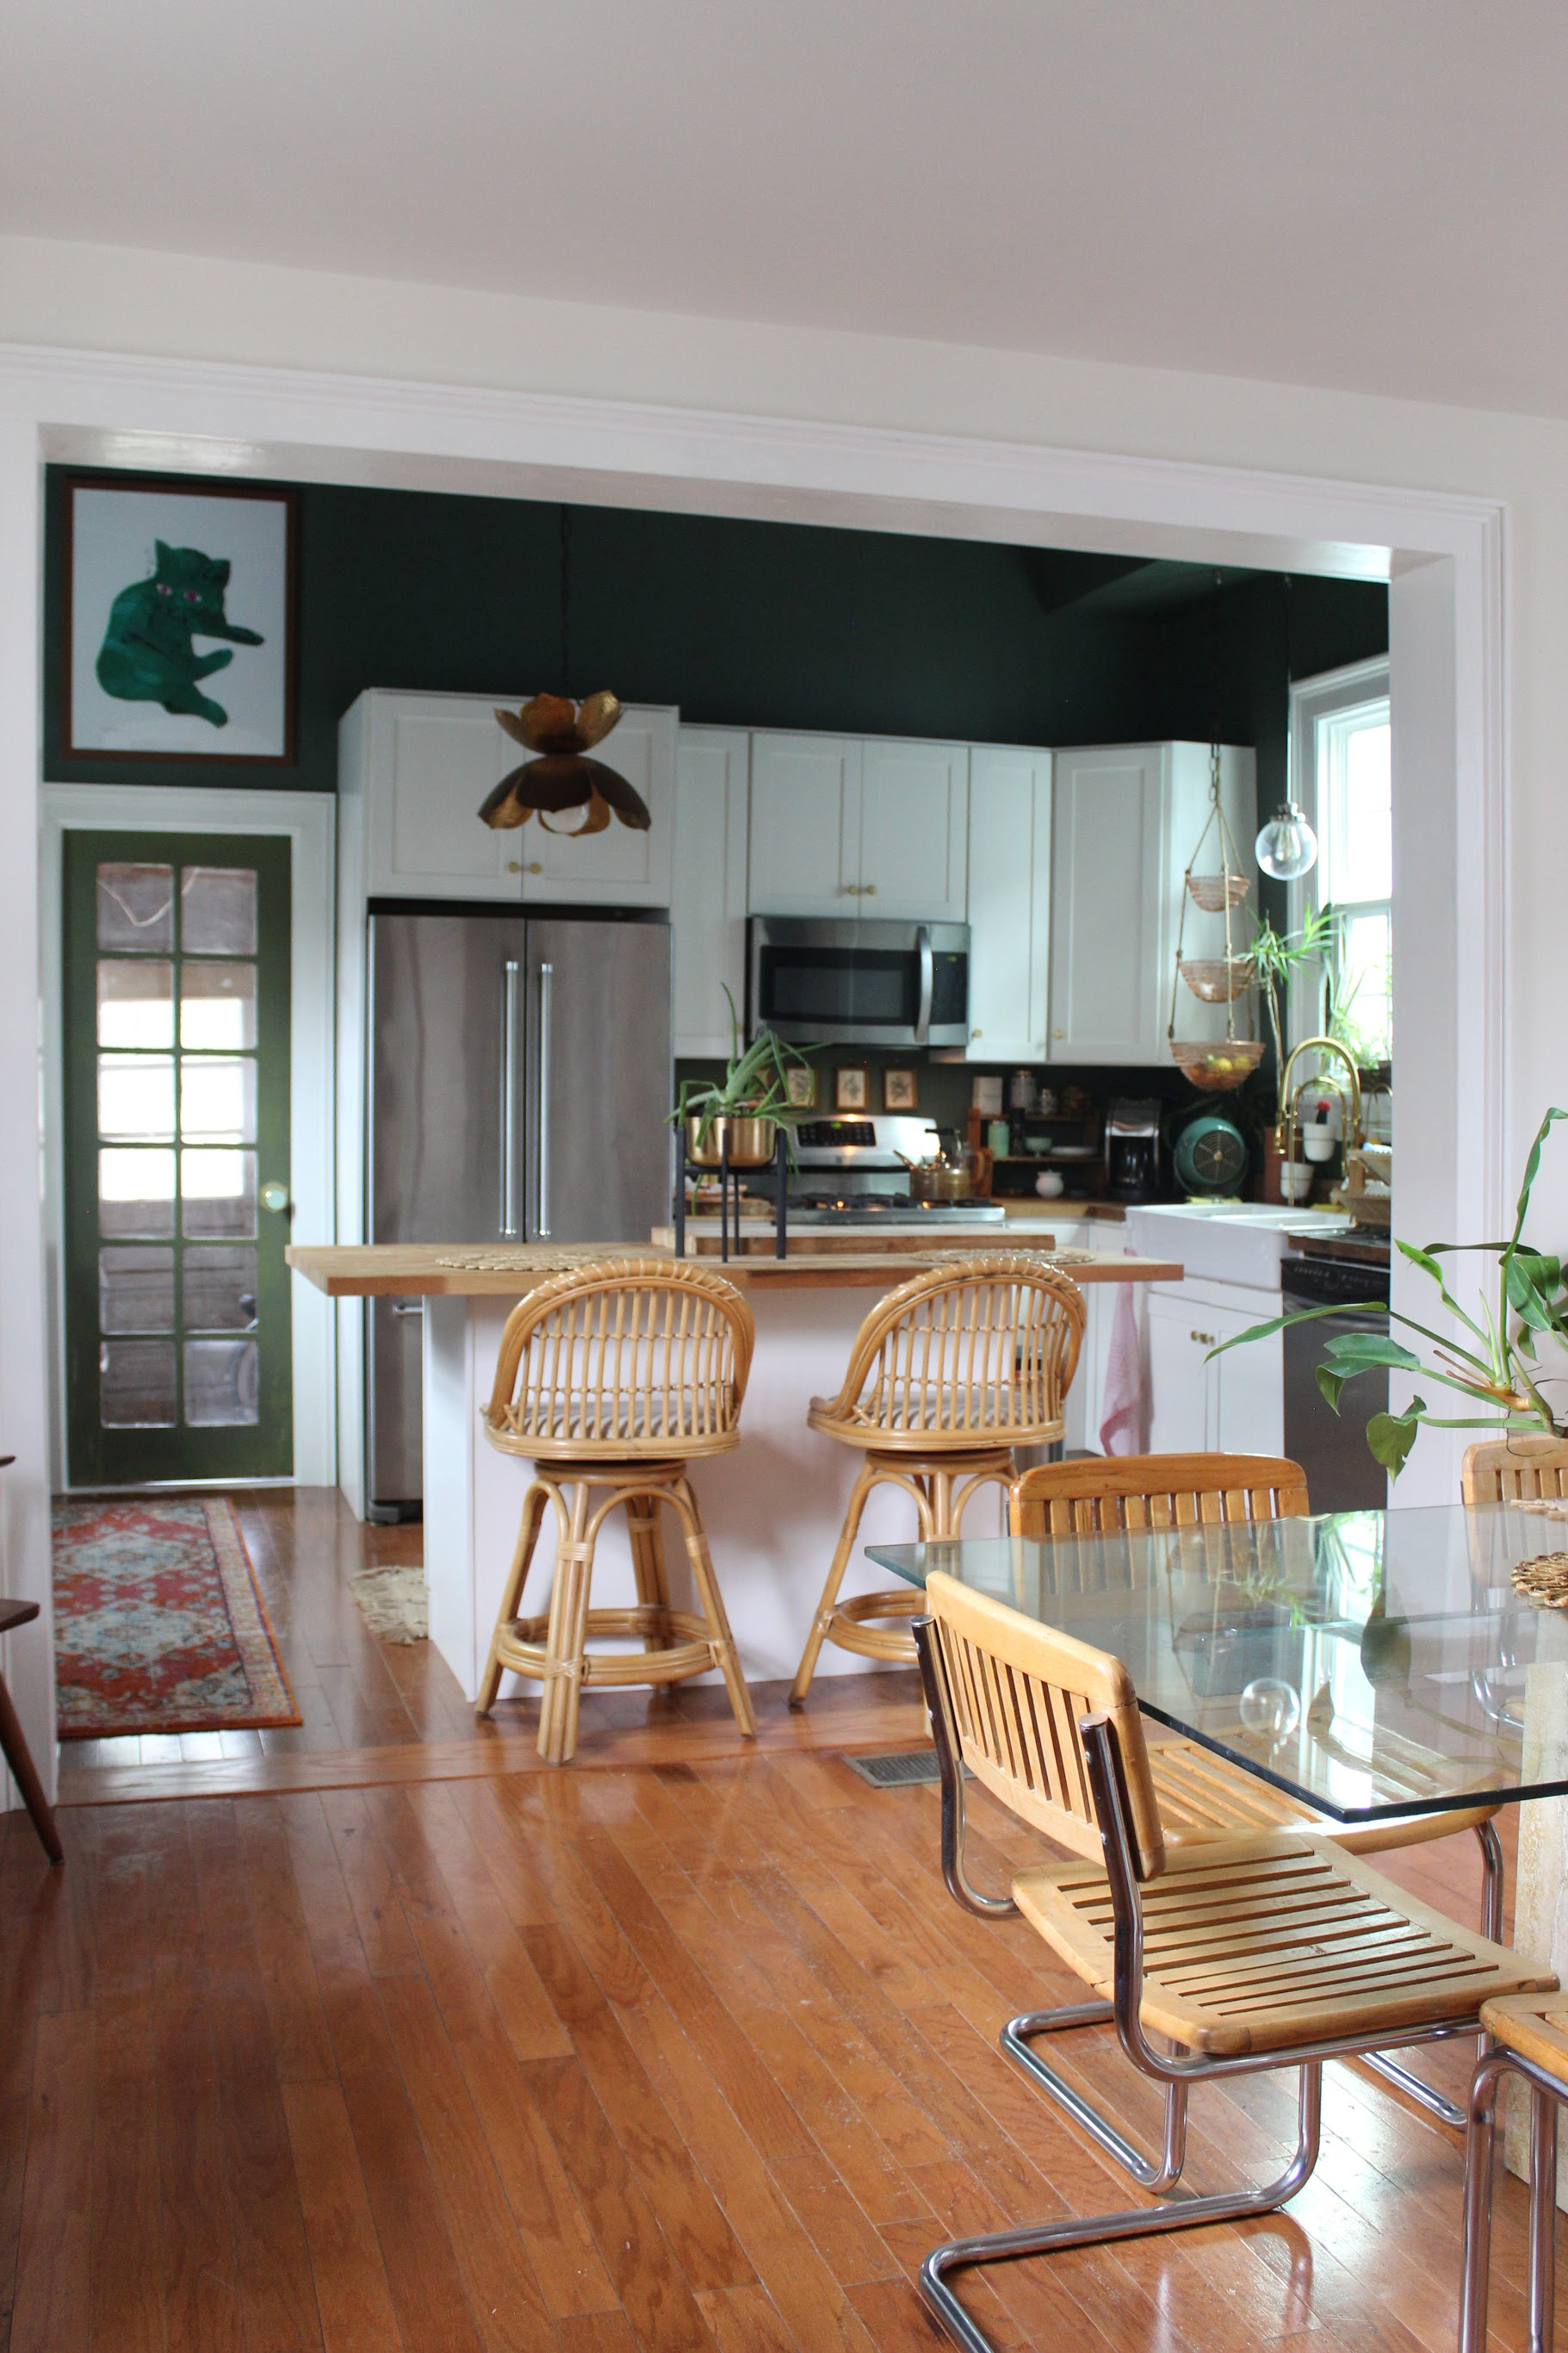 The dining room is open to the kitchen which is my favorite space in their home.